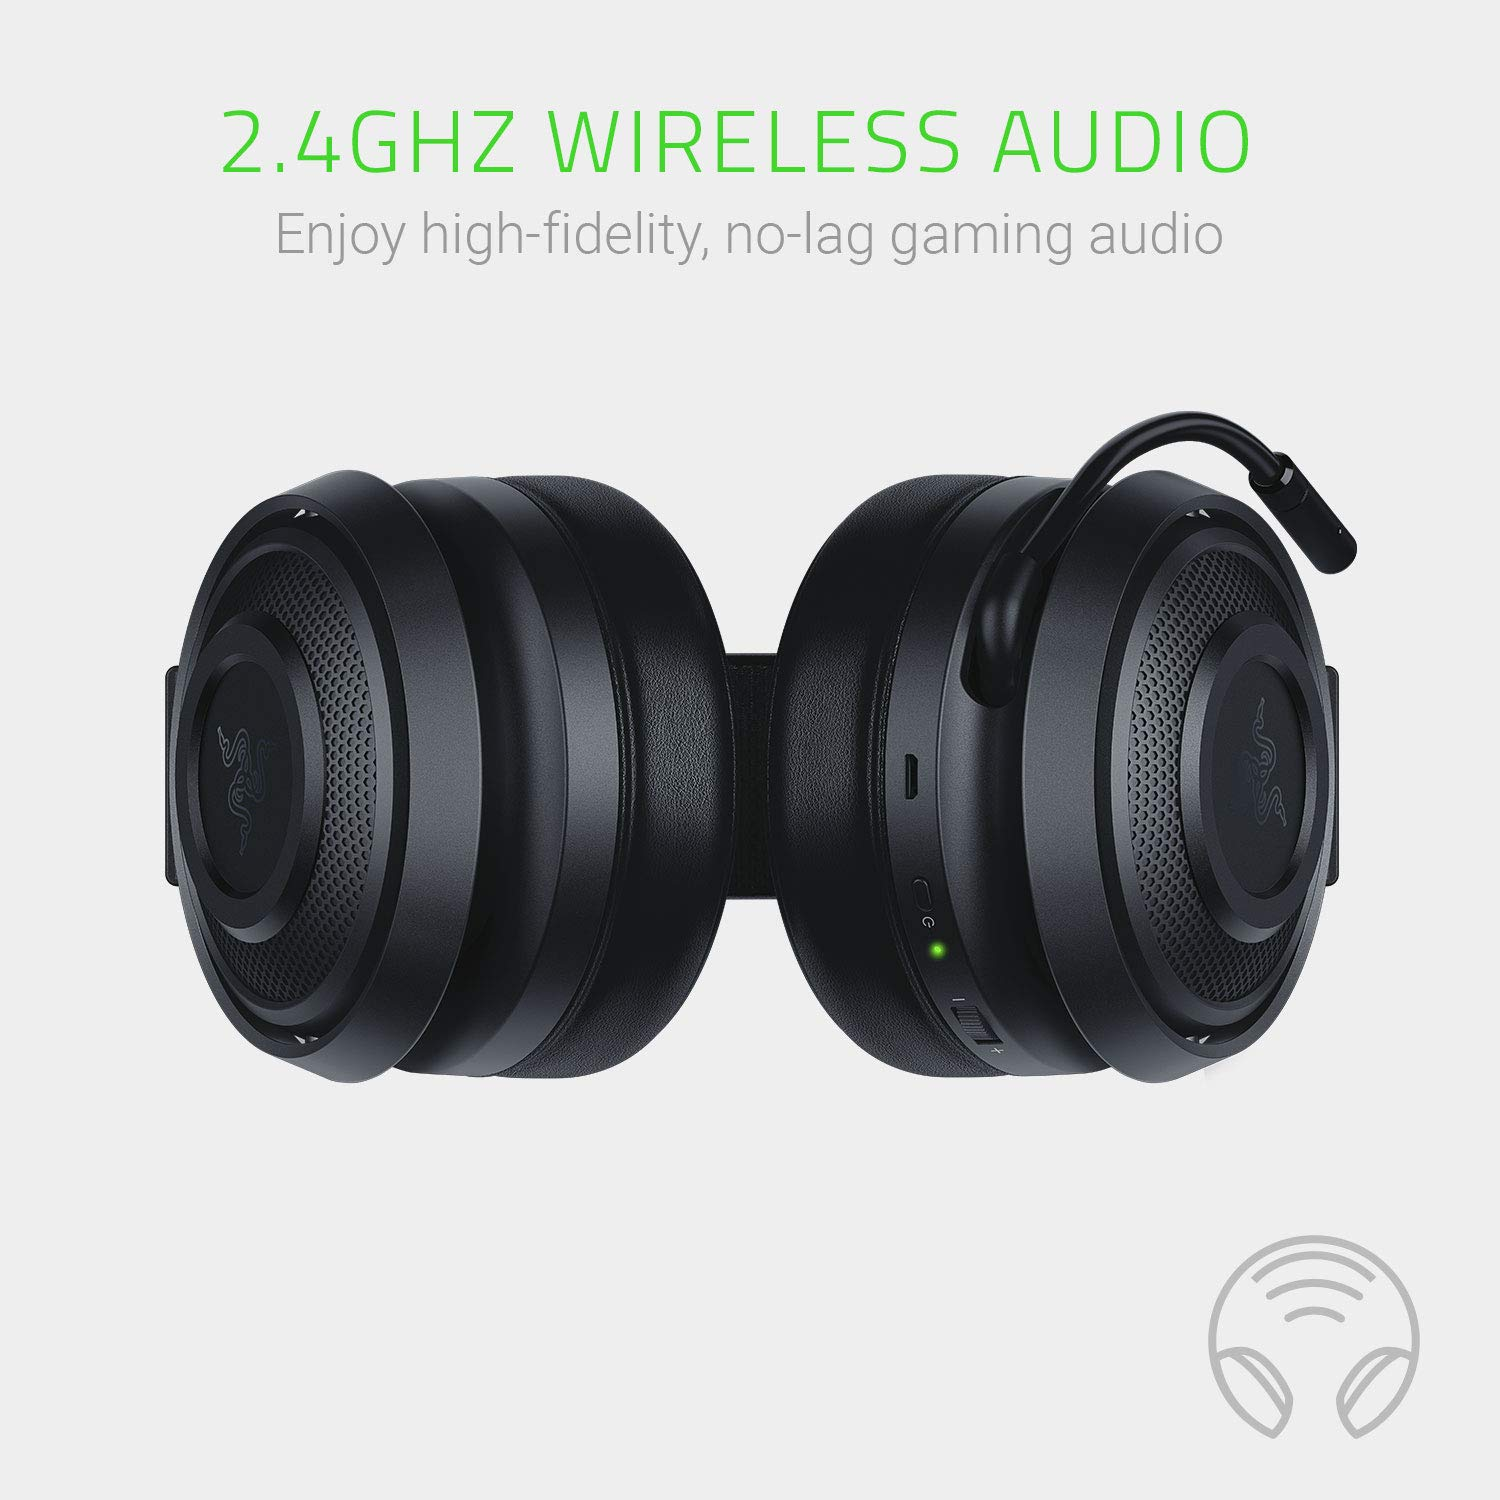 Razer Nari Essential: THX Spatial Audio 2.4GHz Wireless Audio Gaming Headset Works with PC and PS4 Auto-Adjusting Headband